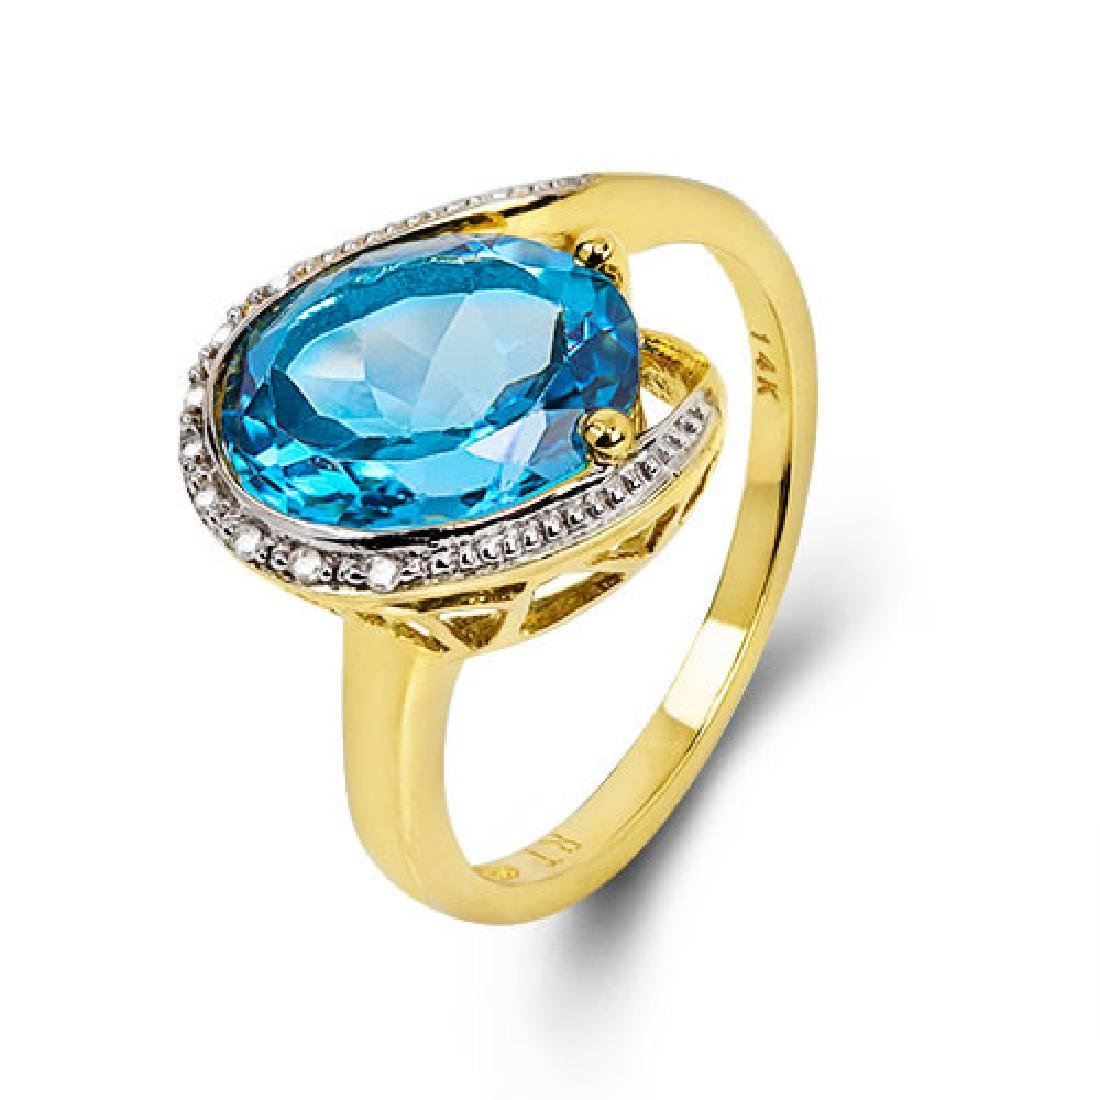 14K WHITE GOLD LONDON BLUE TOPAZ 4.4CT RING WITH - 5